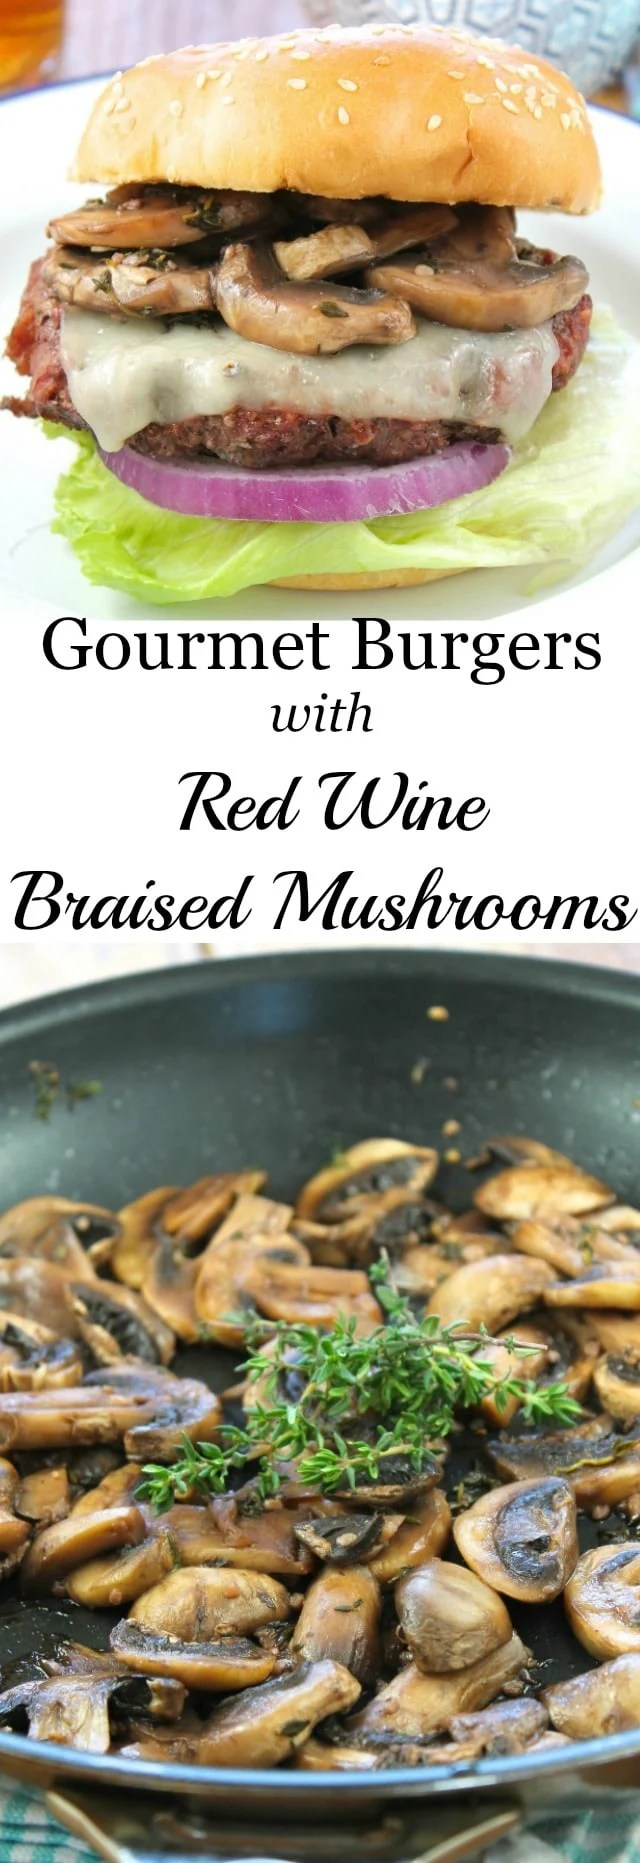 Gourmet Burgers with Red Wine Braised Mushrooms Recipe From missinthekitchen.com